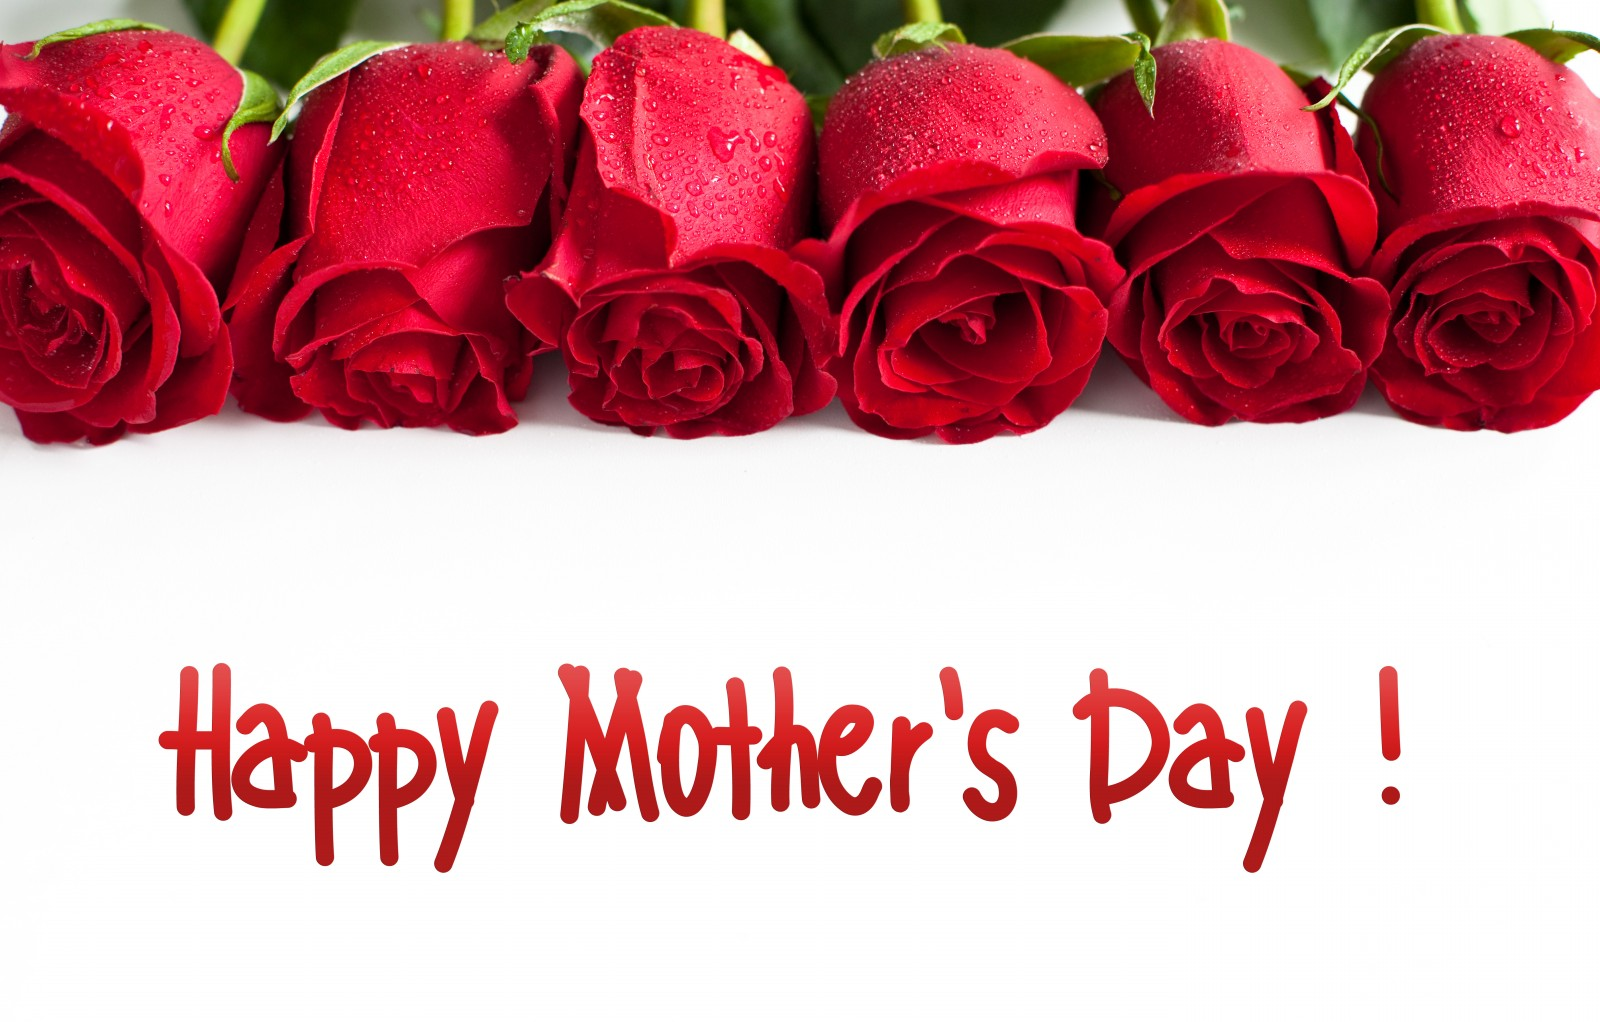 Mothers Day 2020 quotes wishes